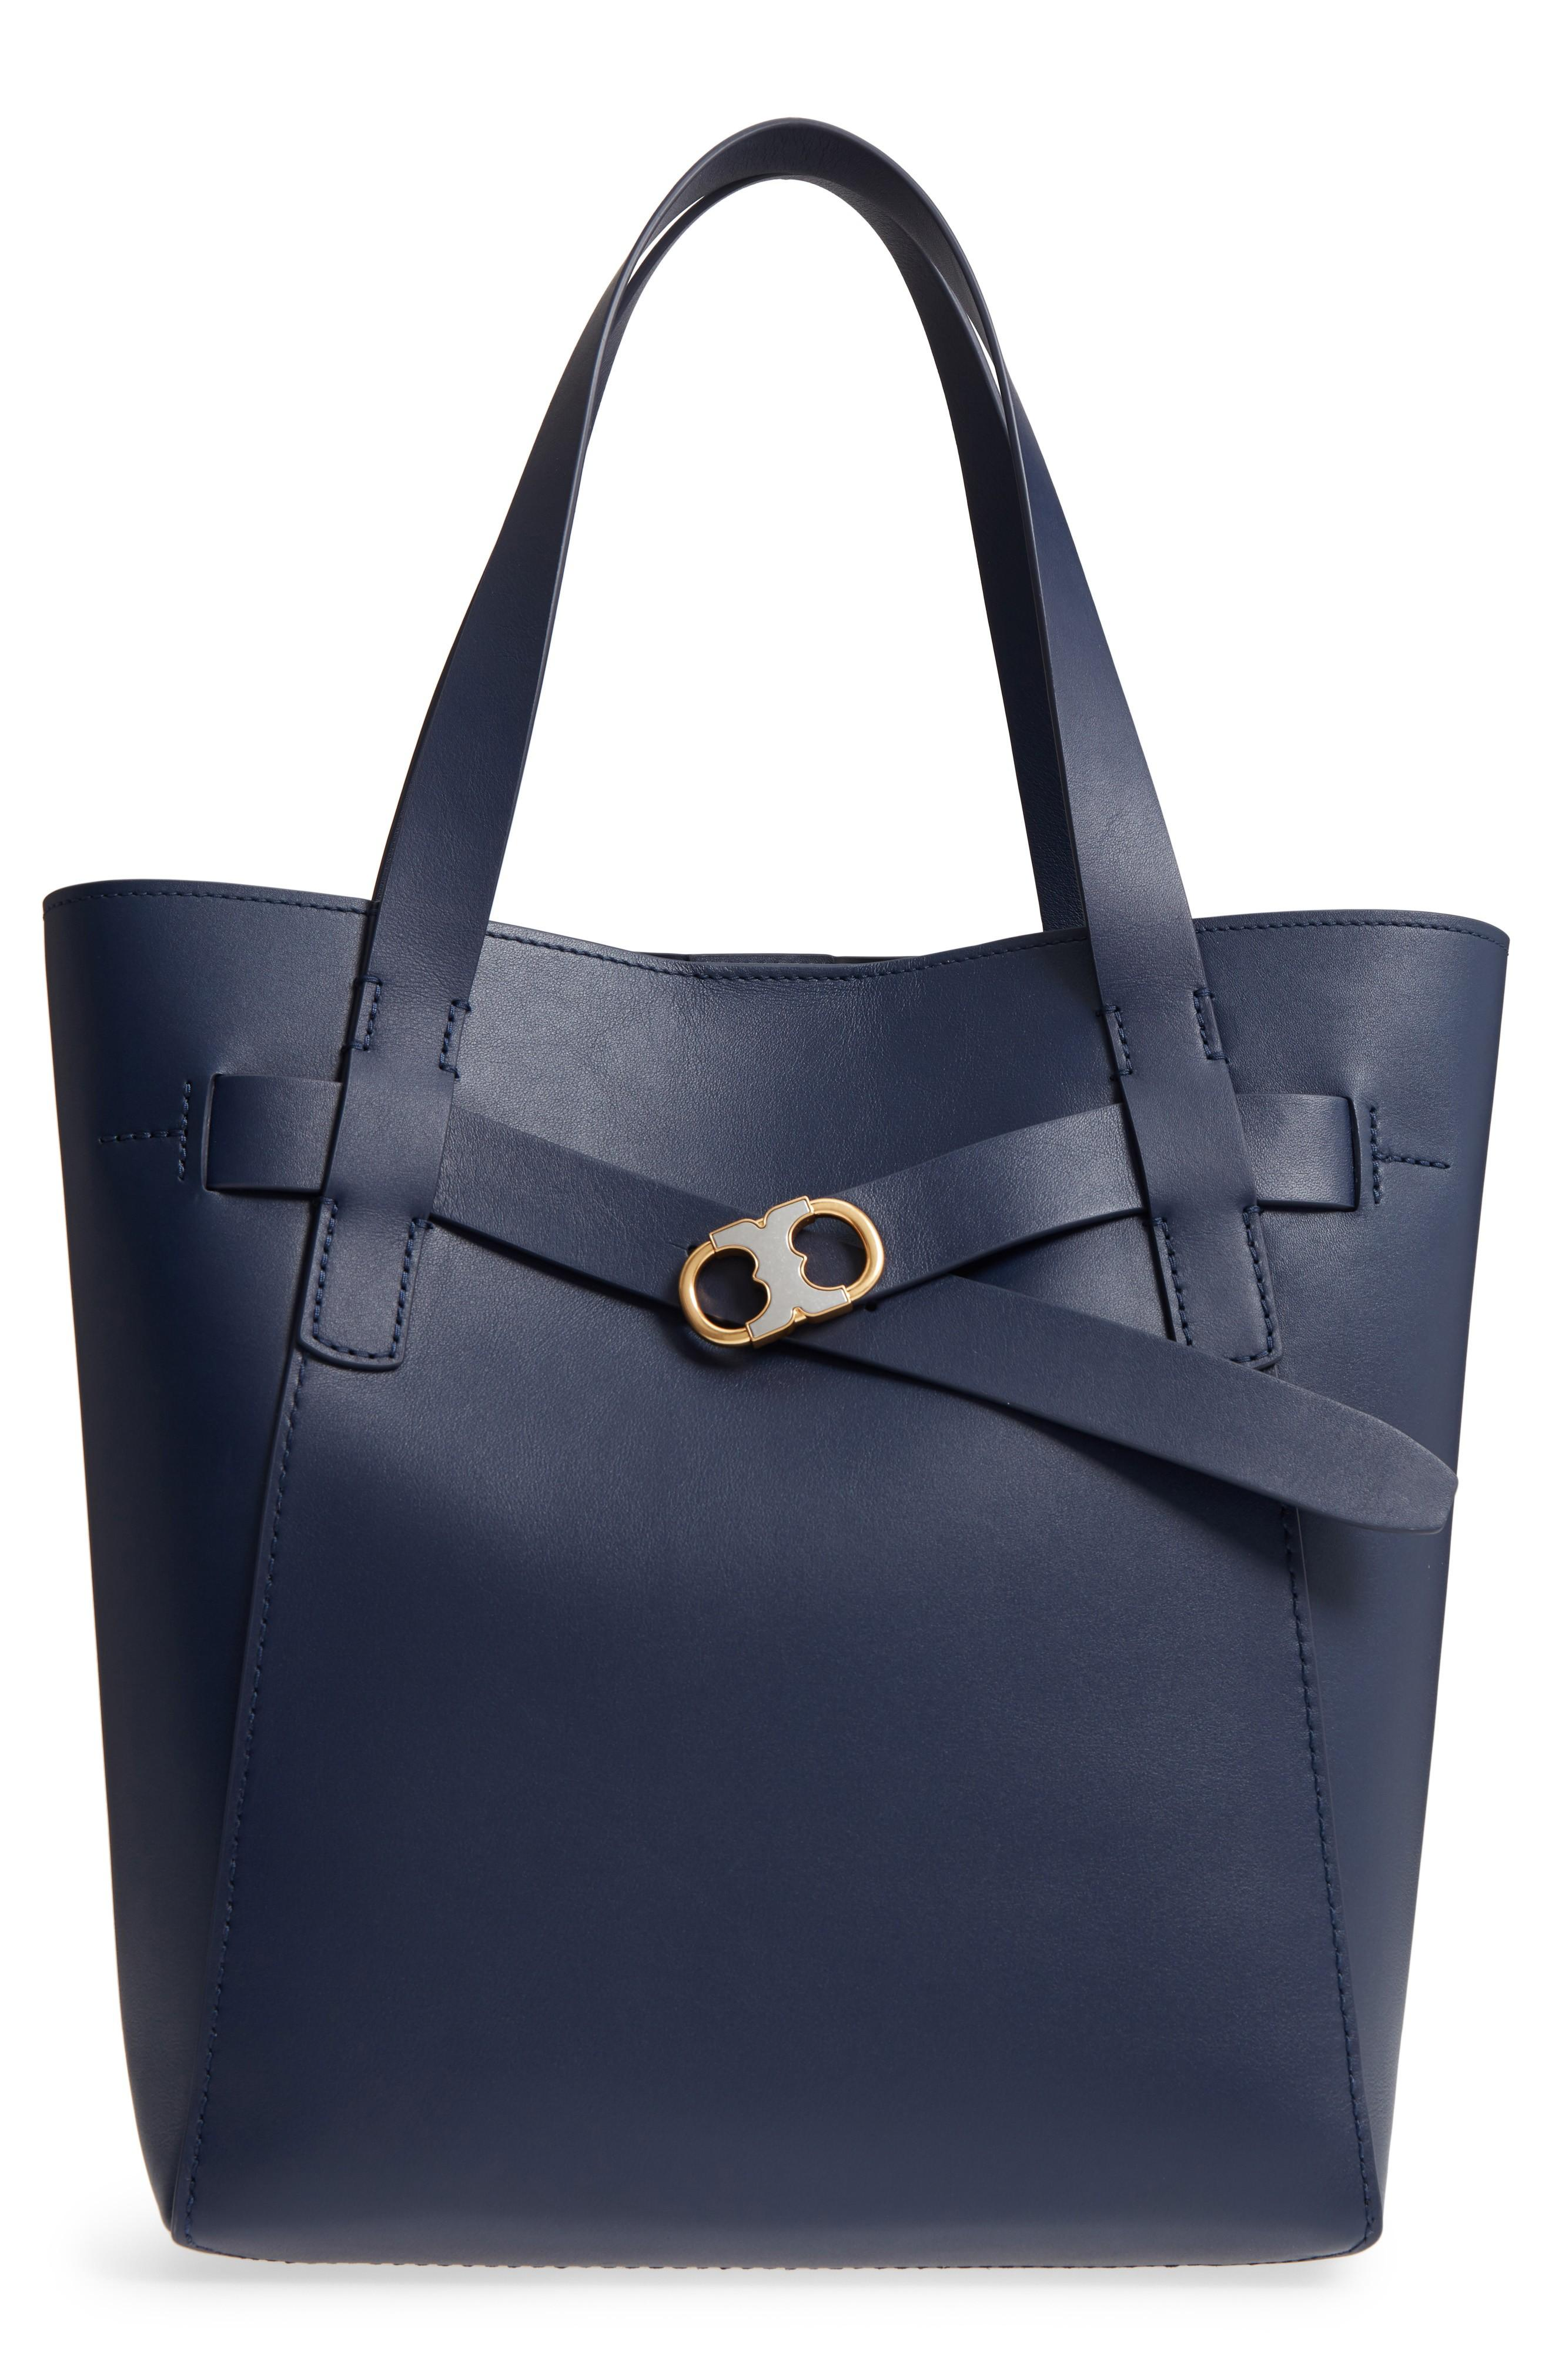 89ee94da89a0 Tory Burch Gemini Link Leather Tote - Blue In Royal Navy